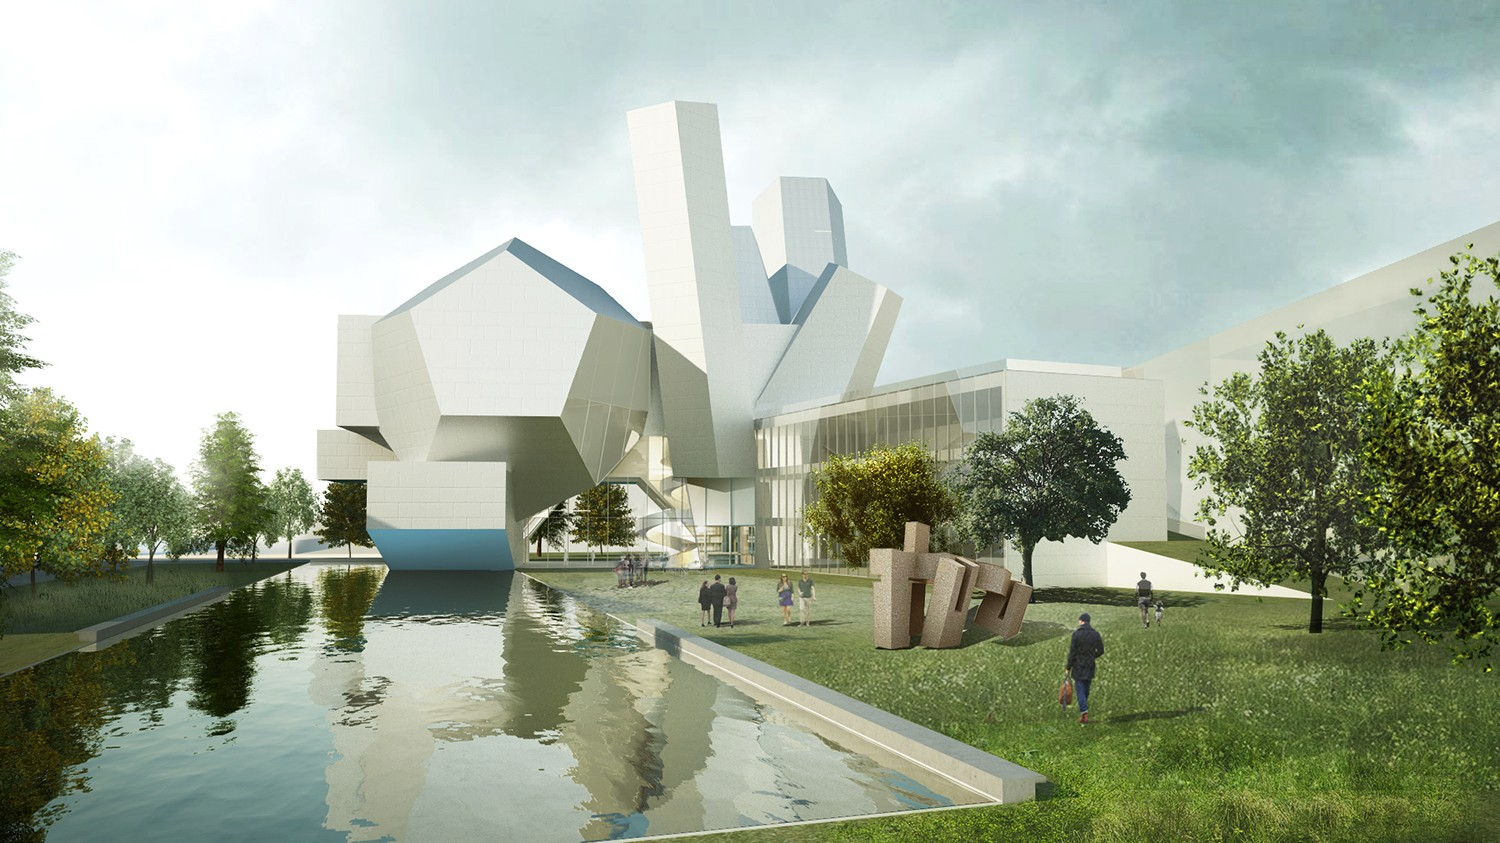 https://s3.us-east-2.amazonaws.com/steven-holl/uploads/projects/project-images/StevenHollArchitects_UCD_CampusView_0619_WH.jpg